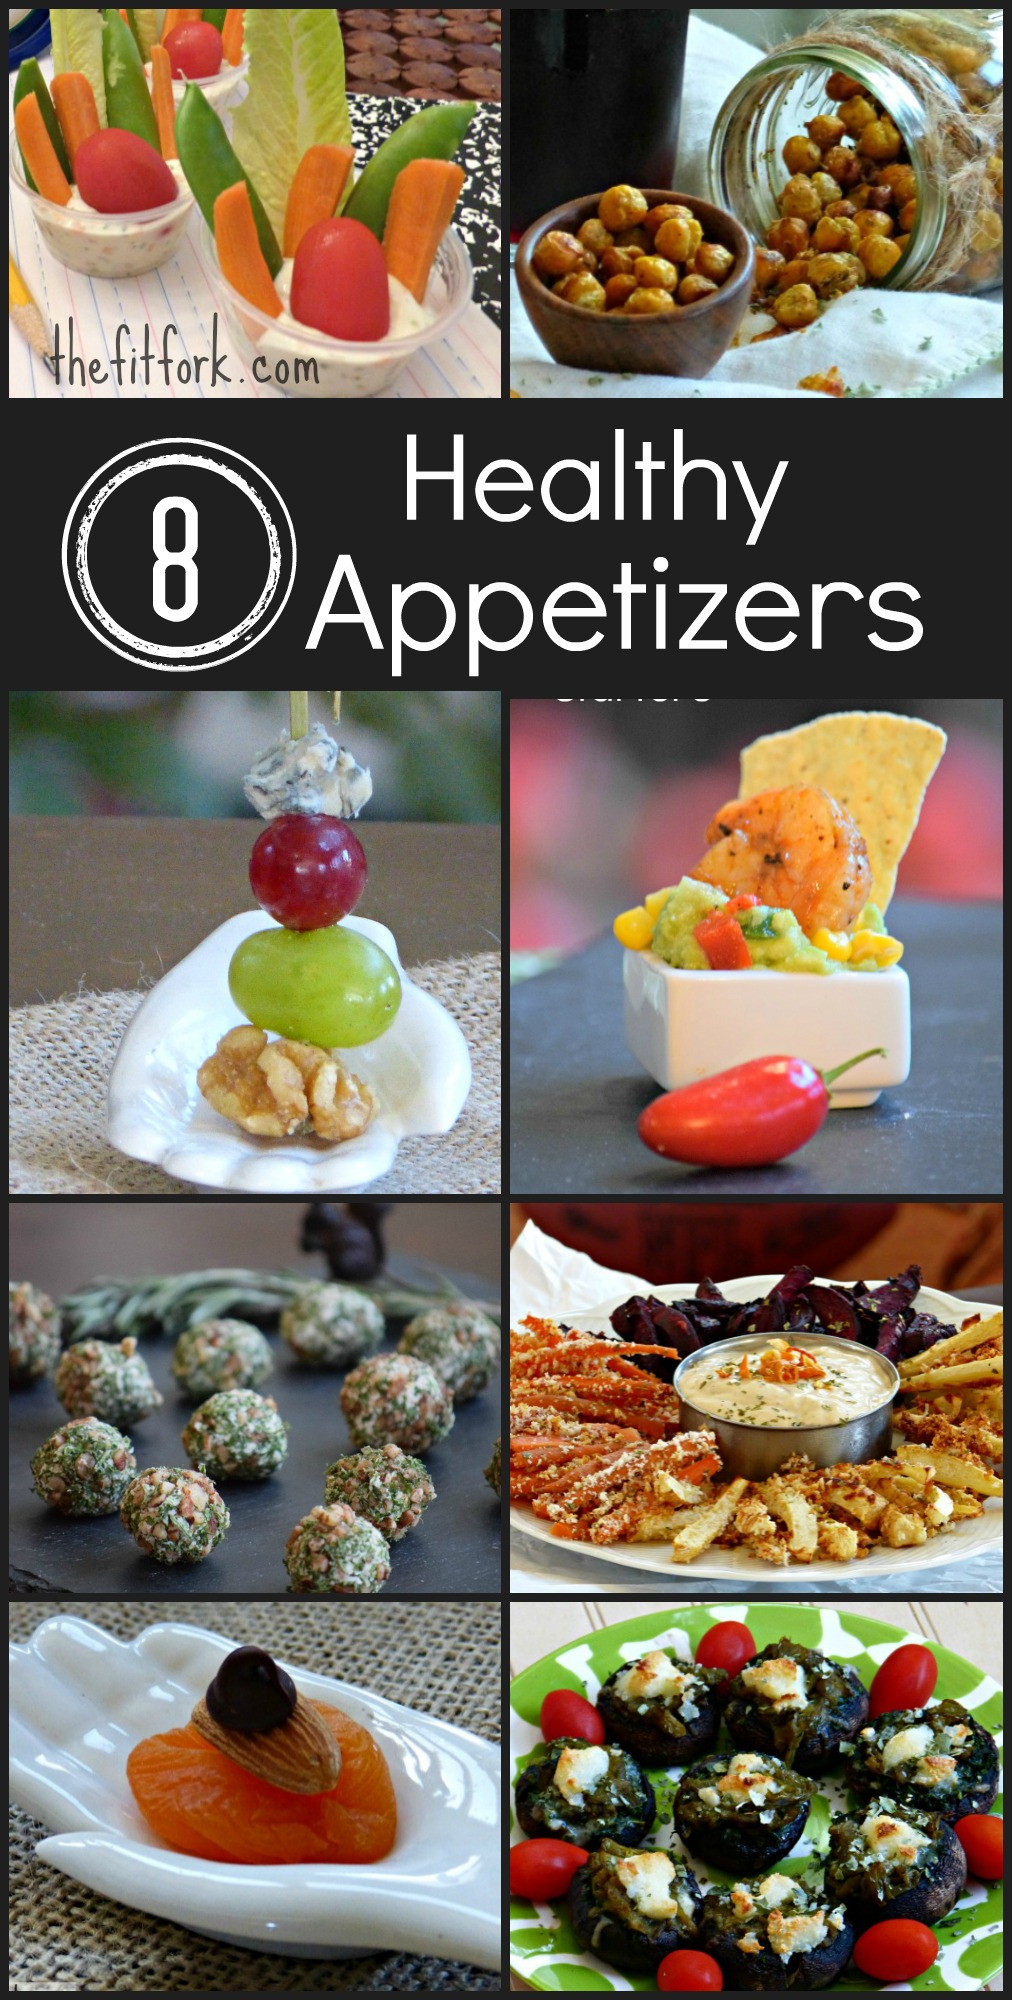 Healthy New Year'S Eve Appetizers  Lettuce Party 8 Healthy Appetizers for New Year's Eve